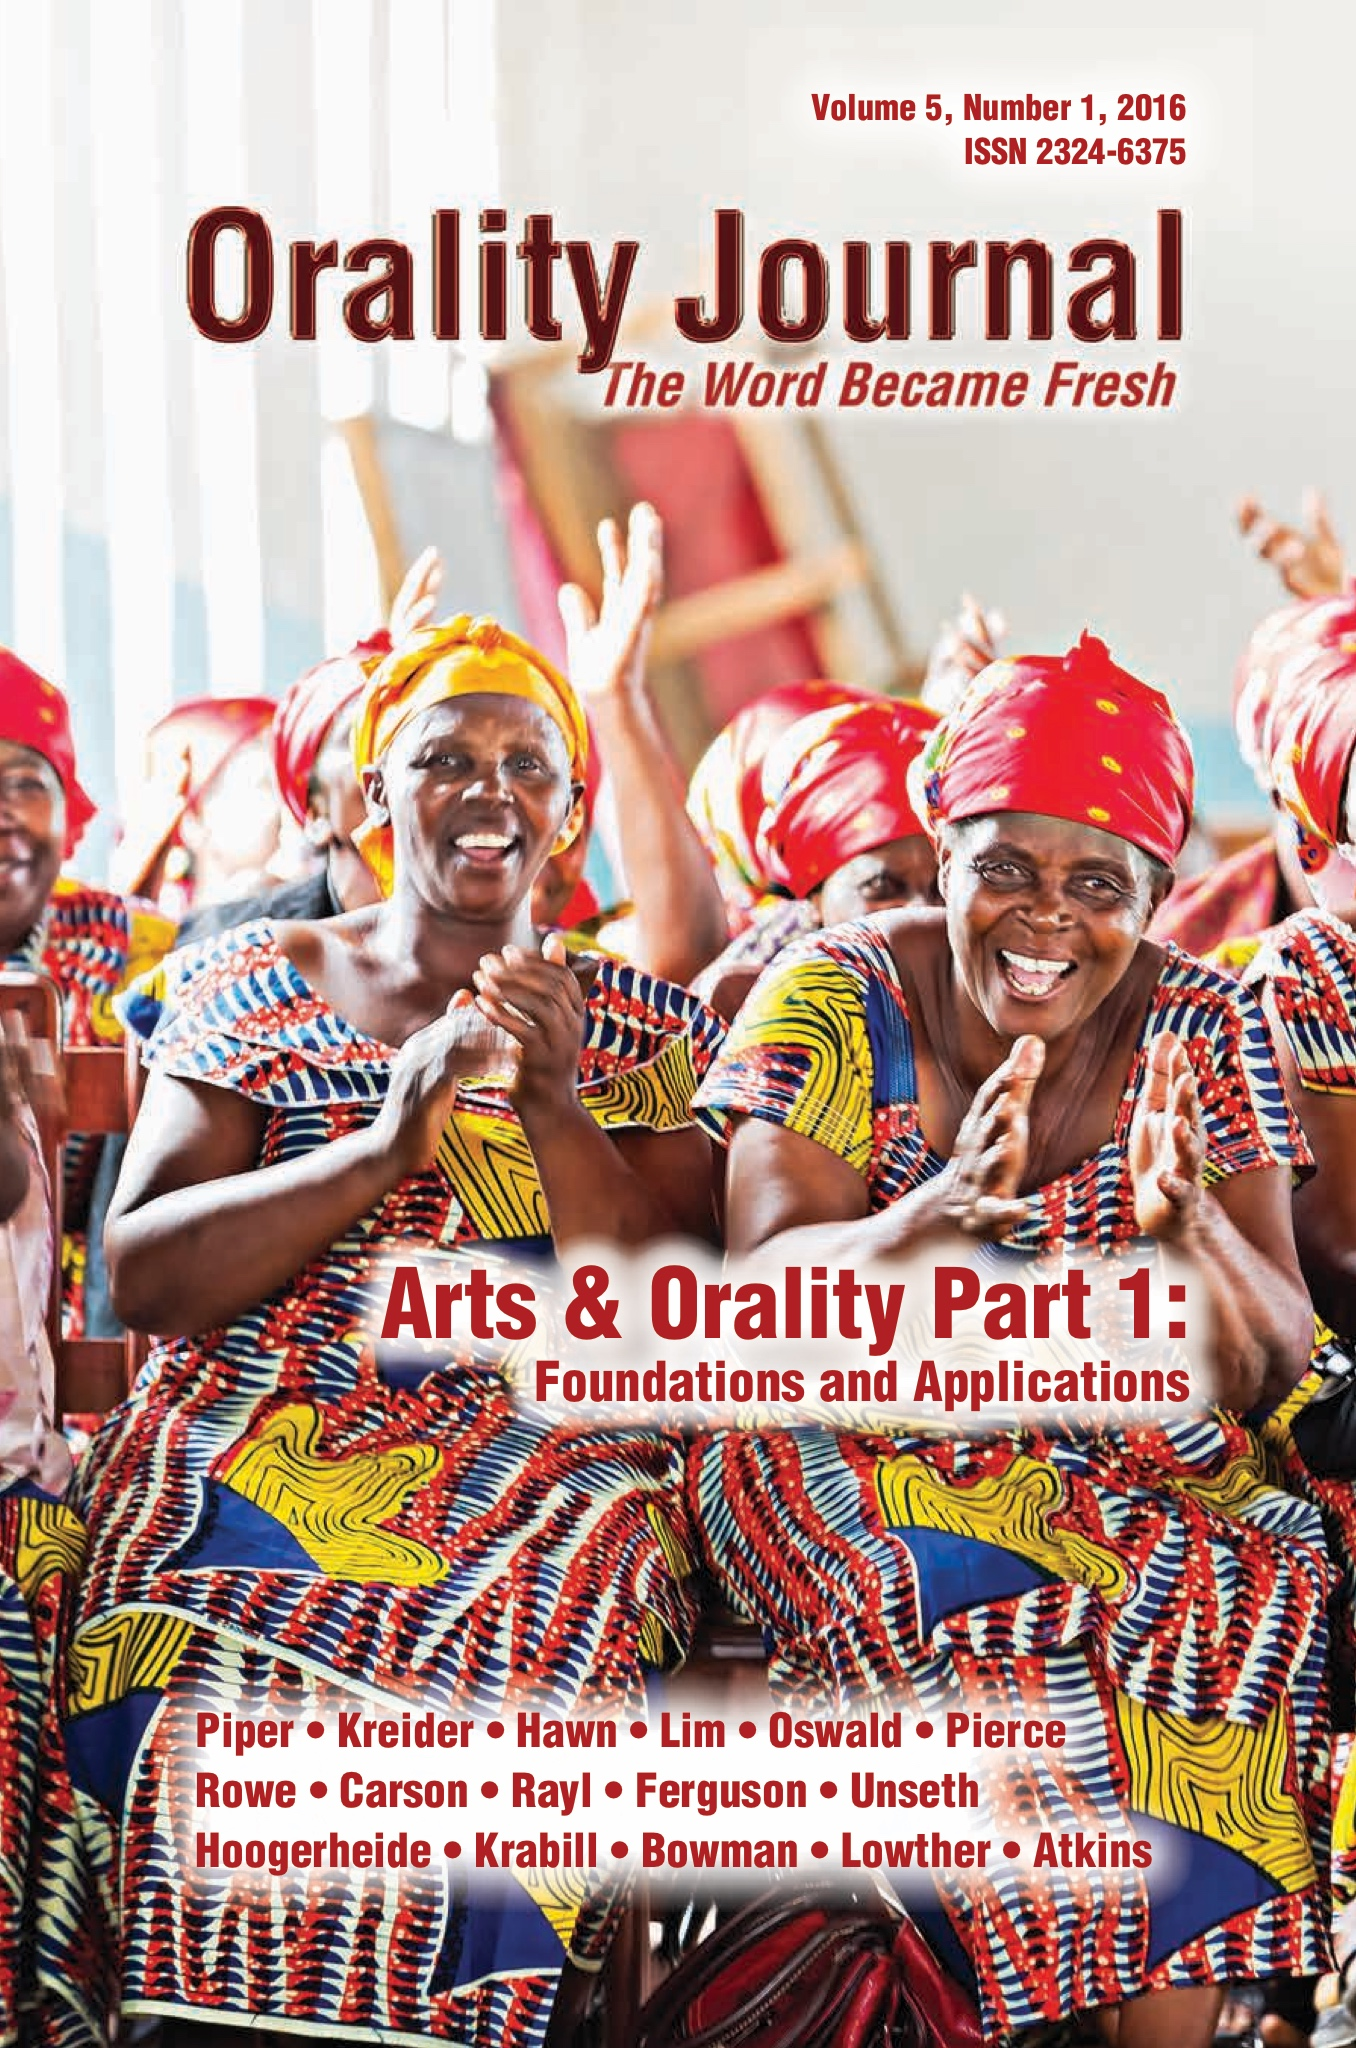 Arts & Orality journal volume published